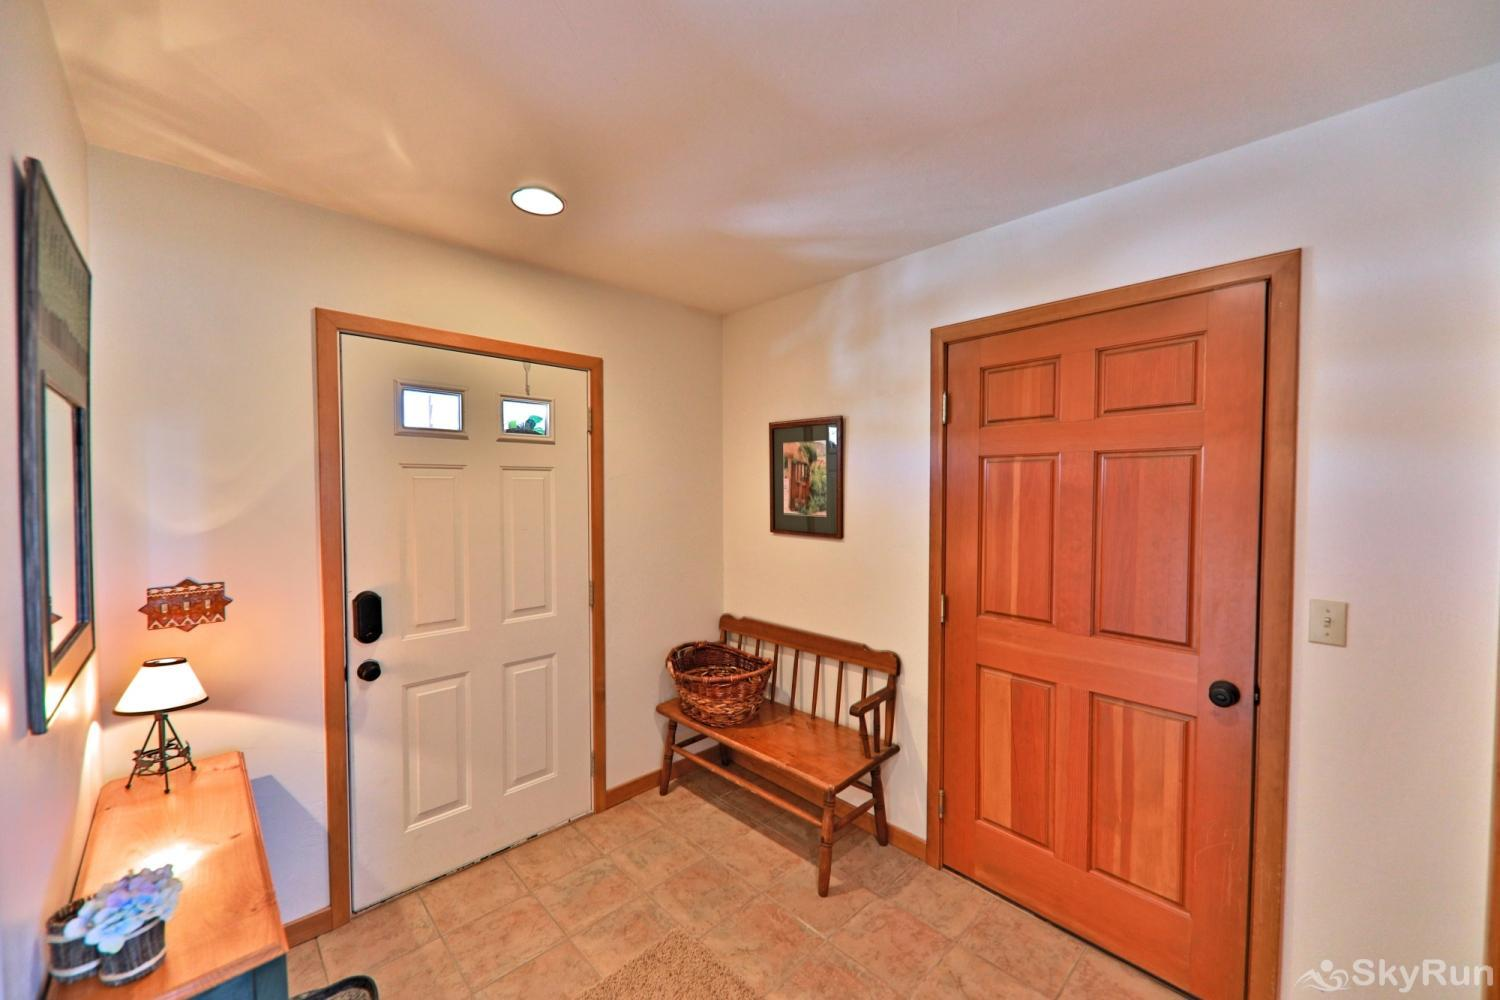 Wapiti Drive Townhome Entry Way with room for gear